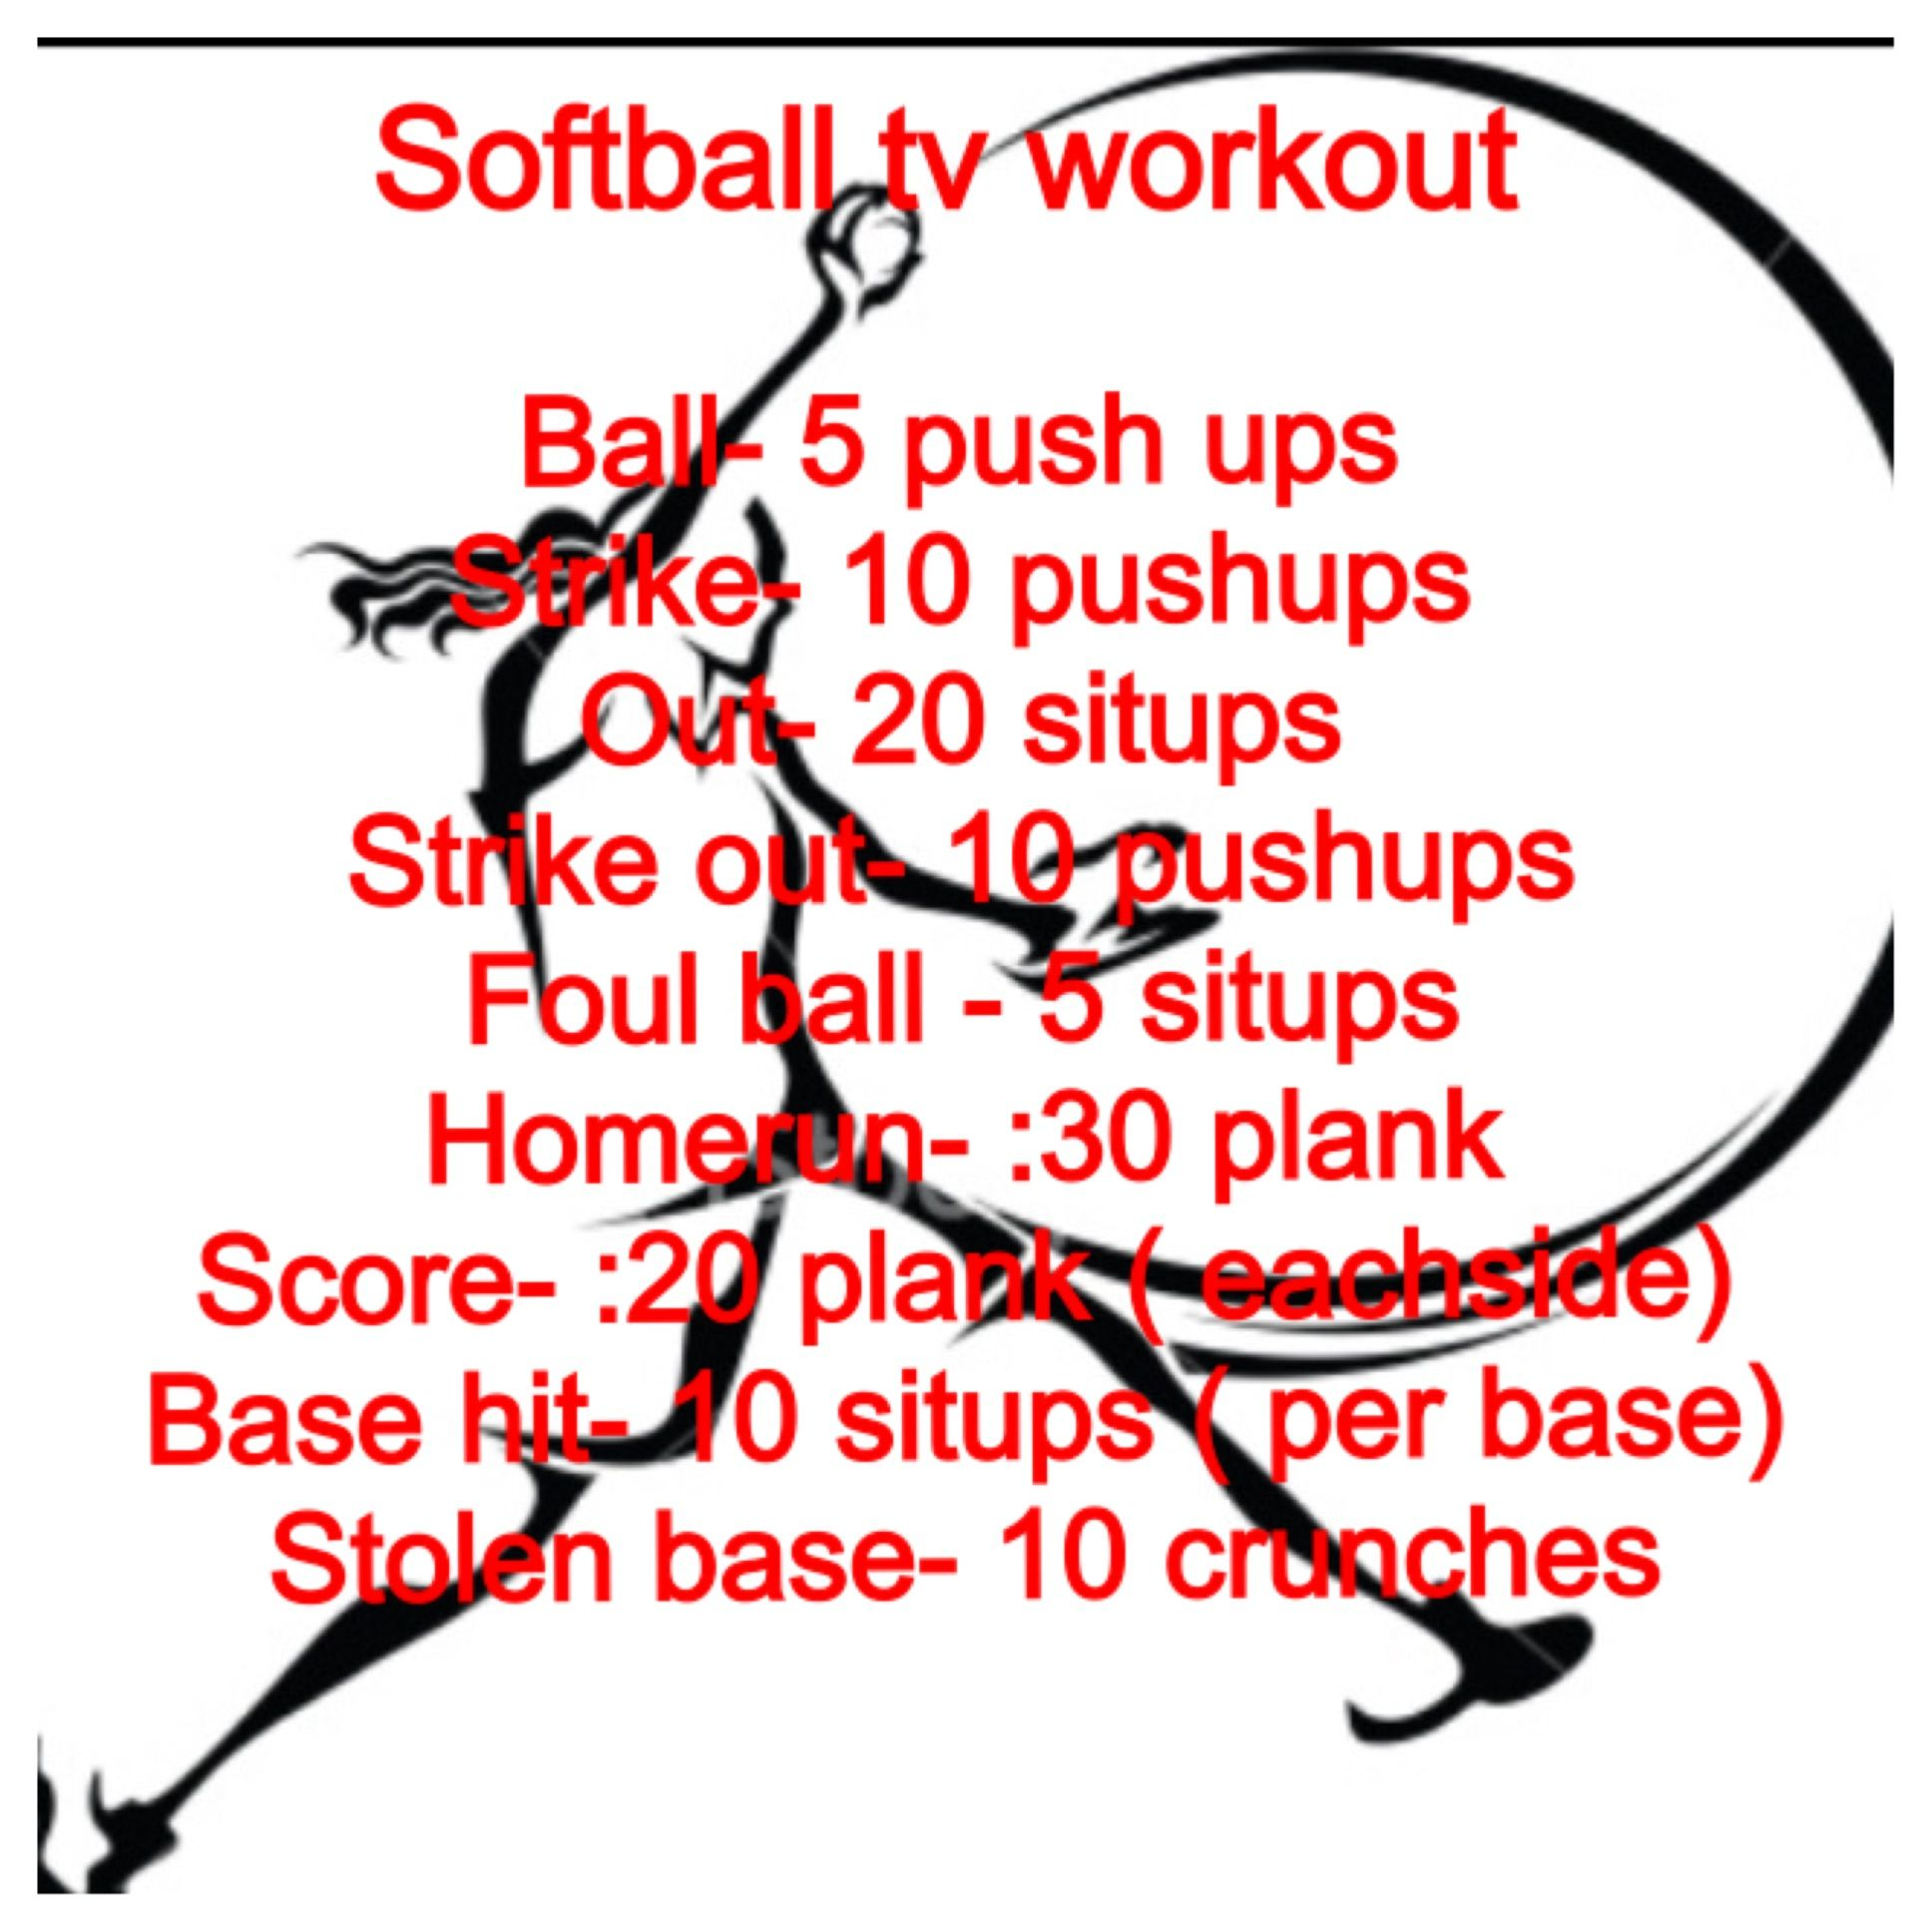 Softball workout for core and upper body i love this  i